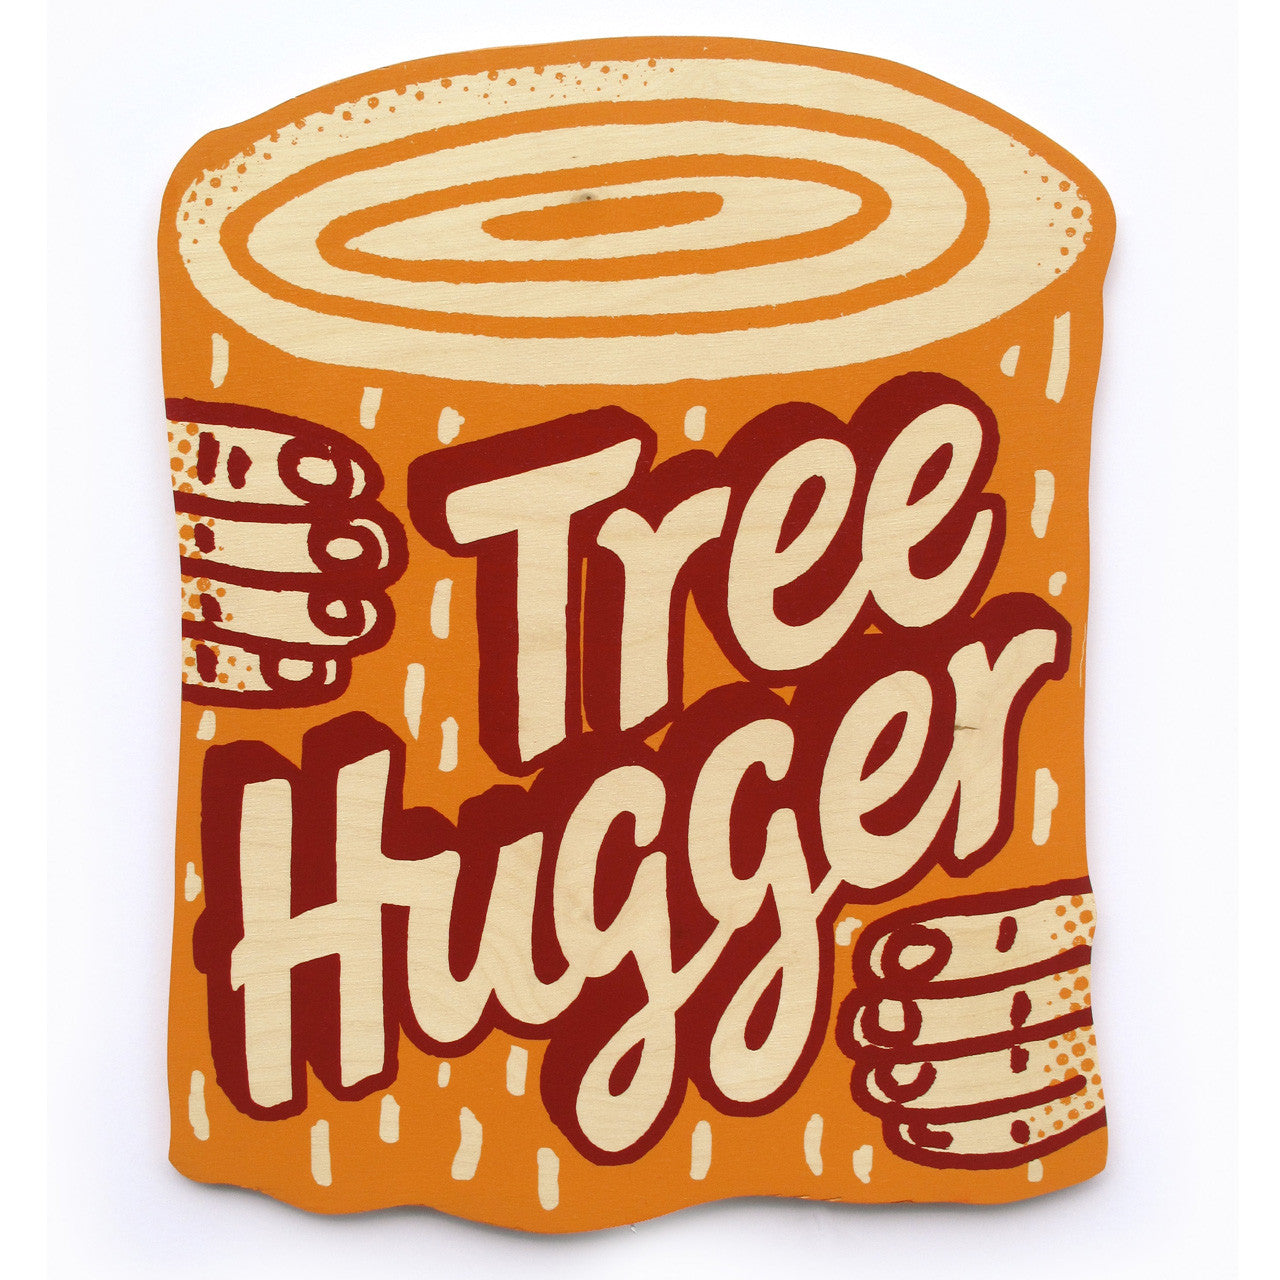 Tree Hugger print on wood by Andy Smith